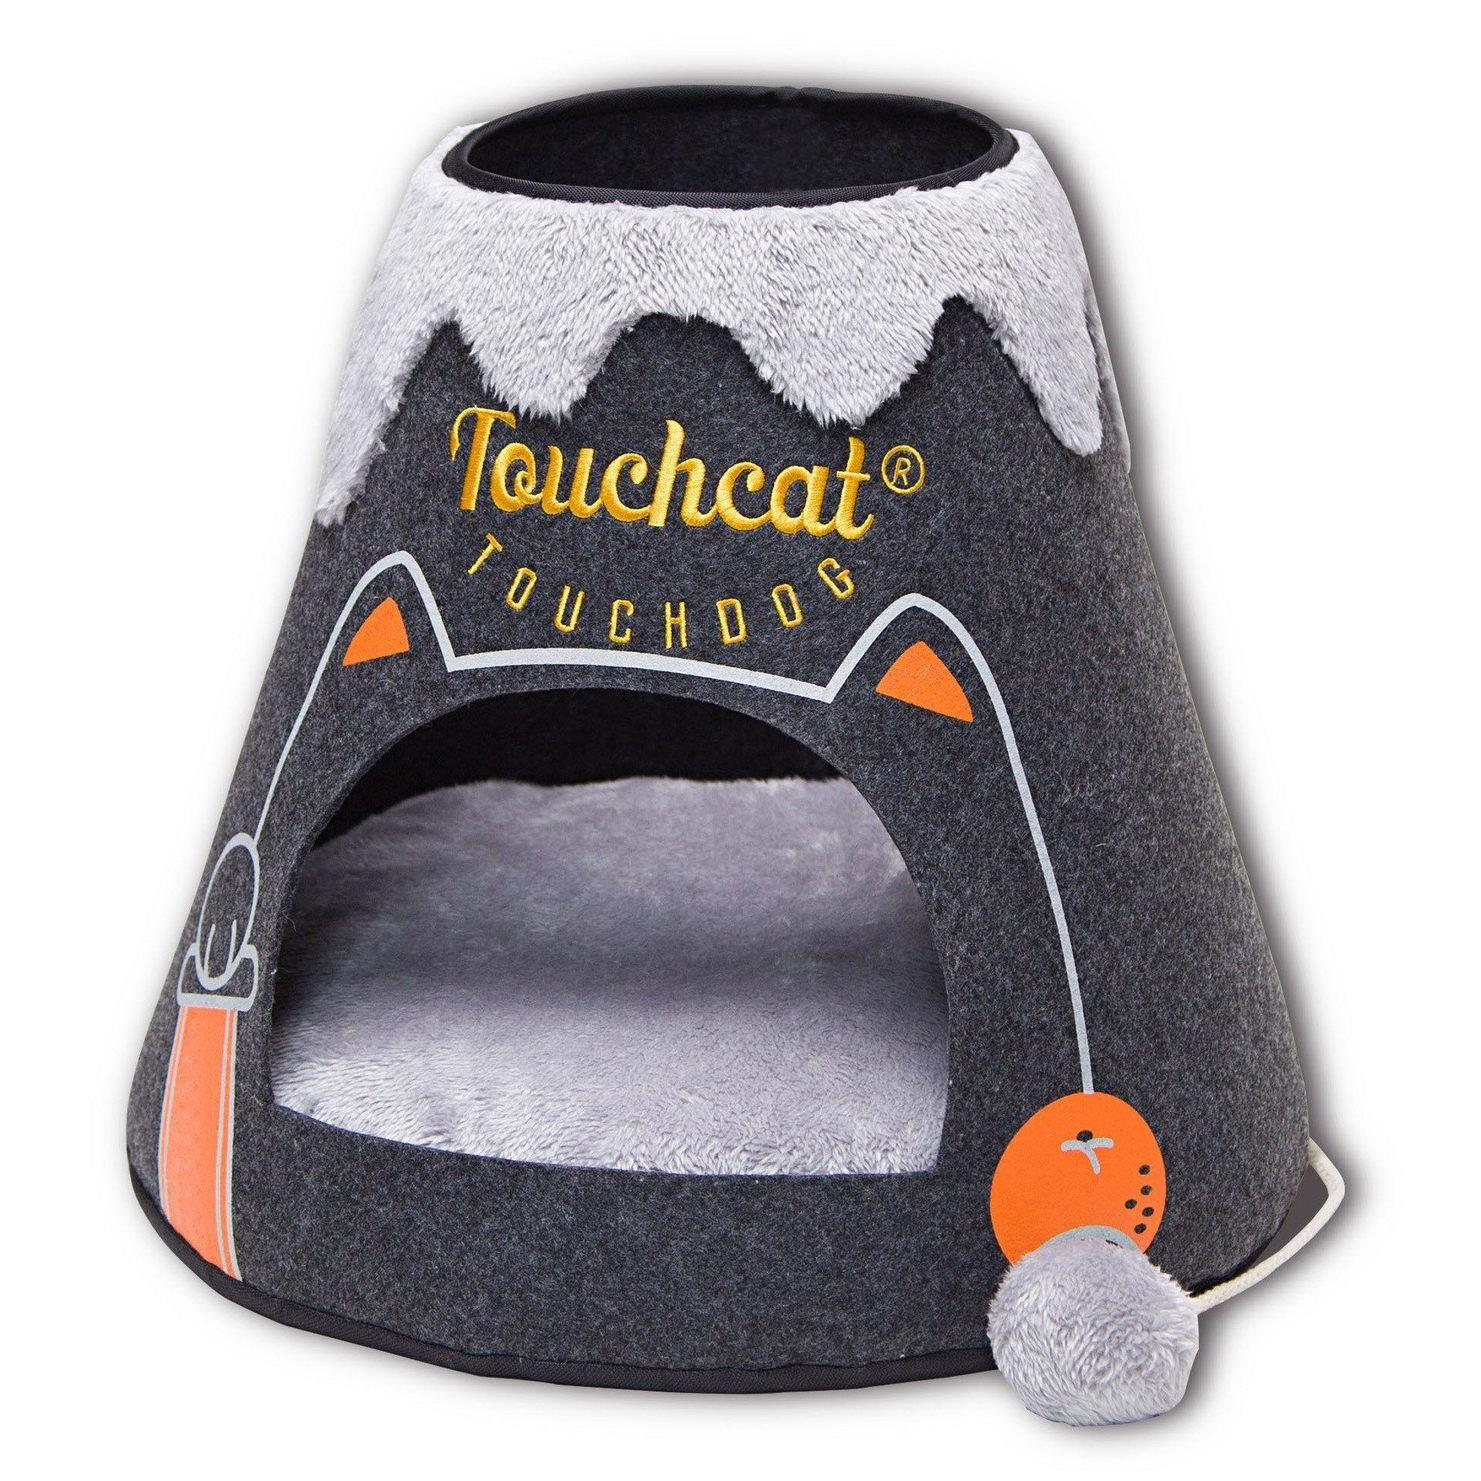 Touchcat 'Molten Lava'  Designer Cat Bed House with Teaser Toy - Charcoal